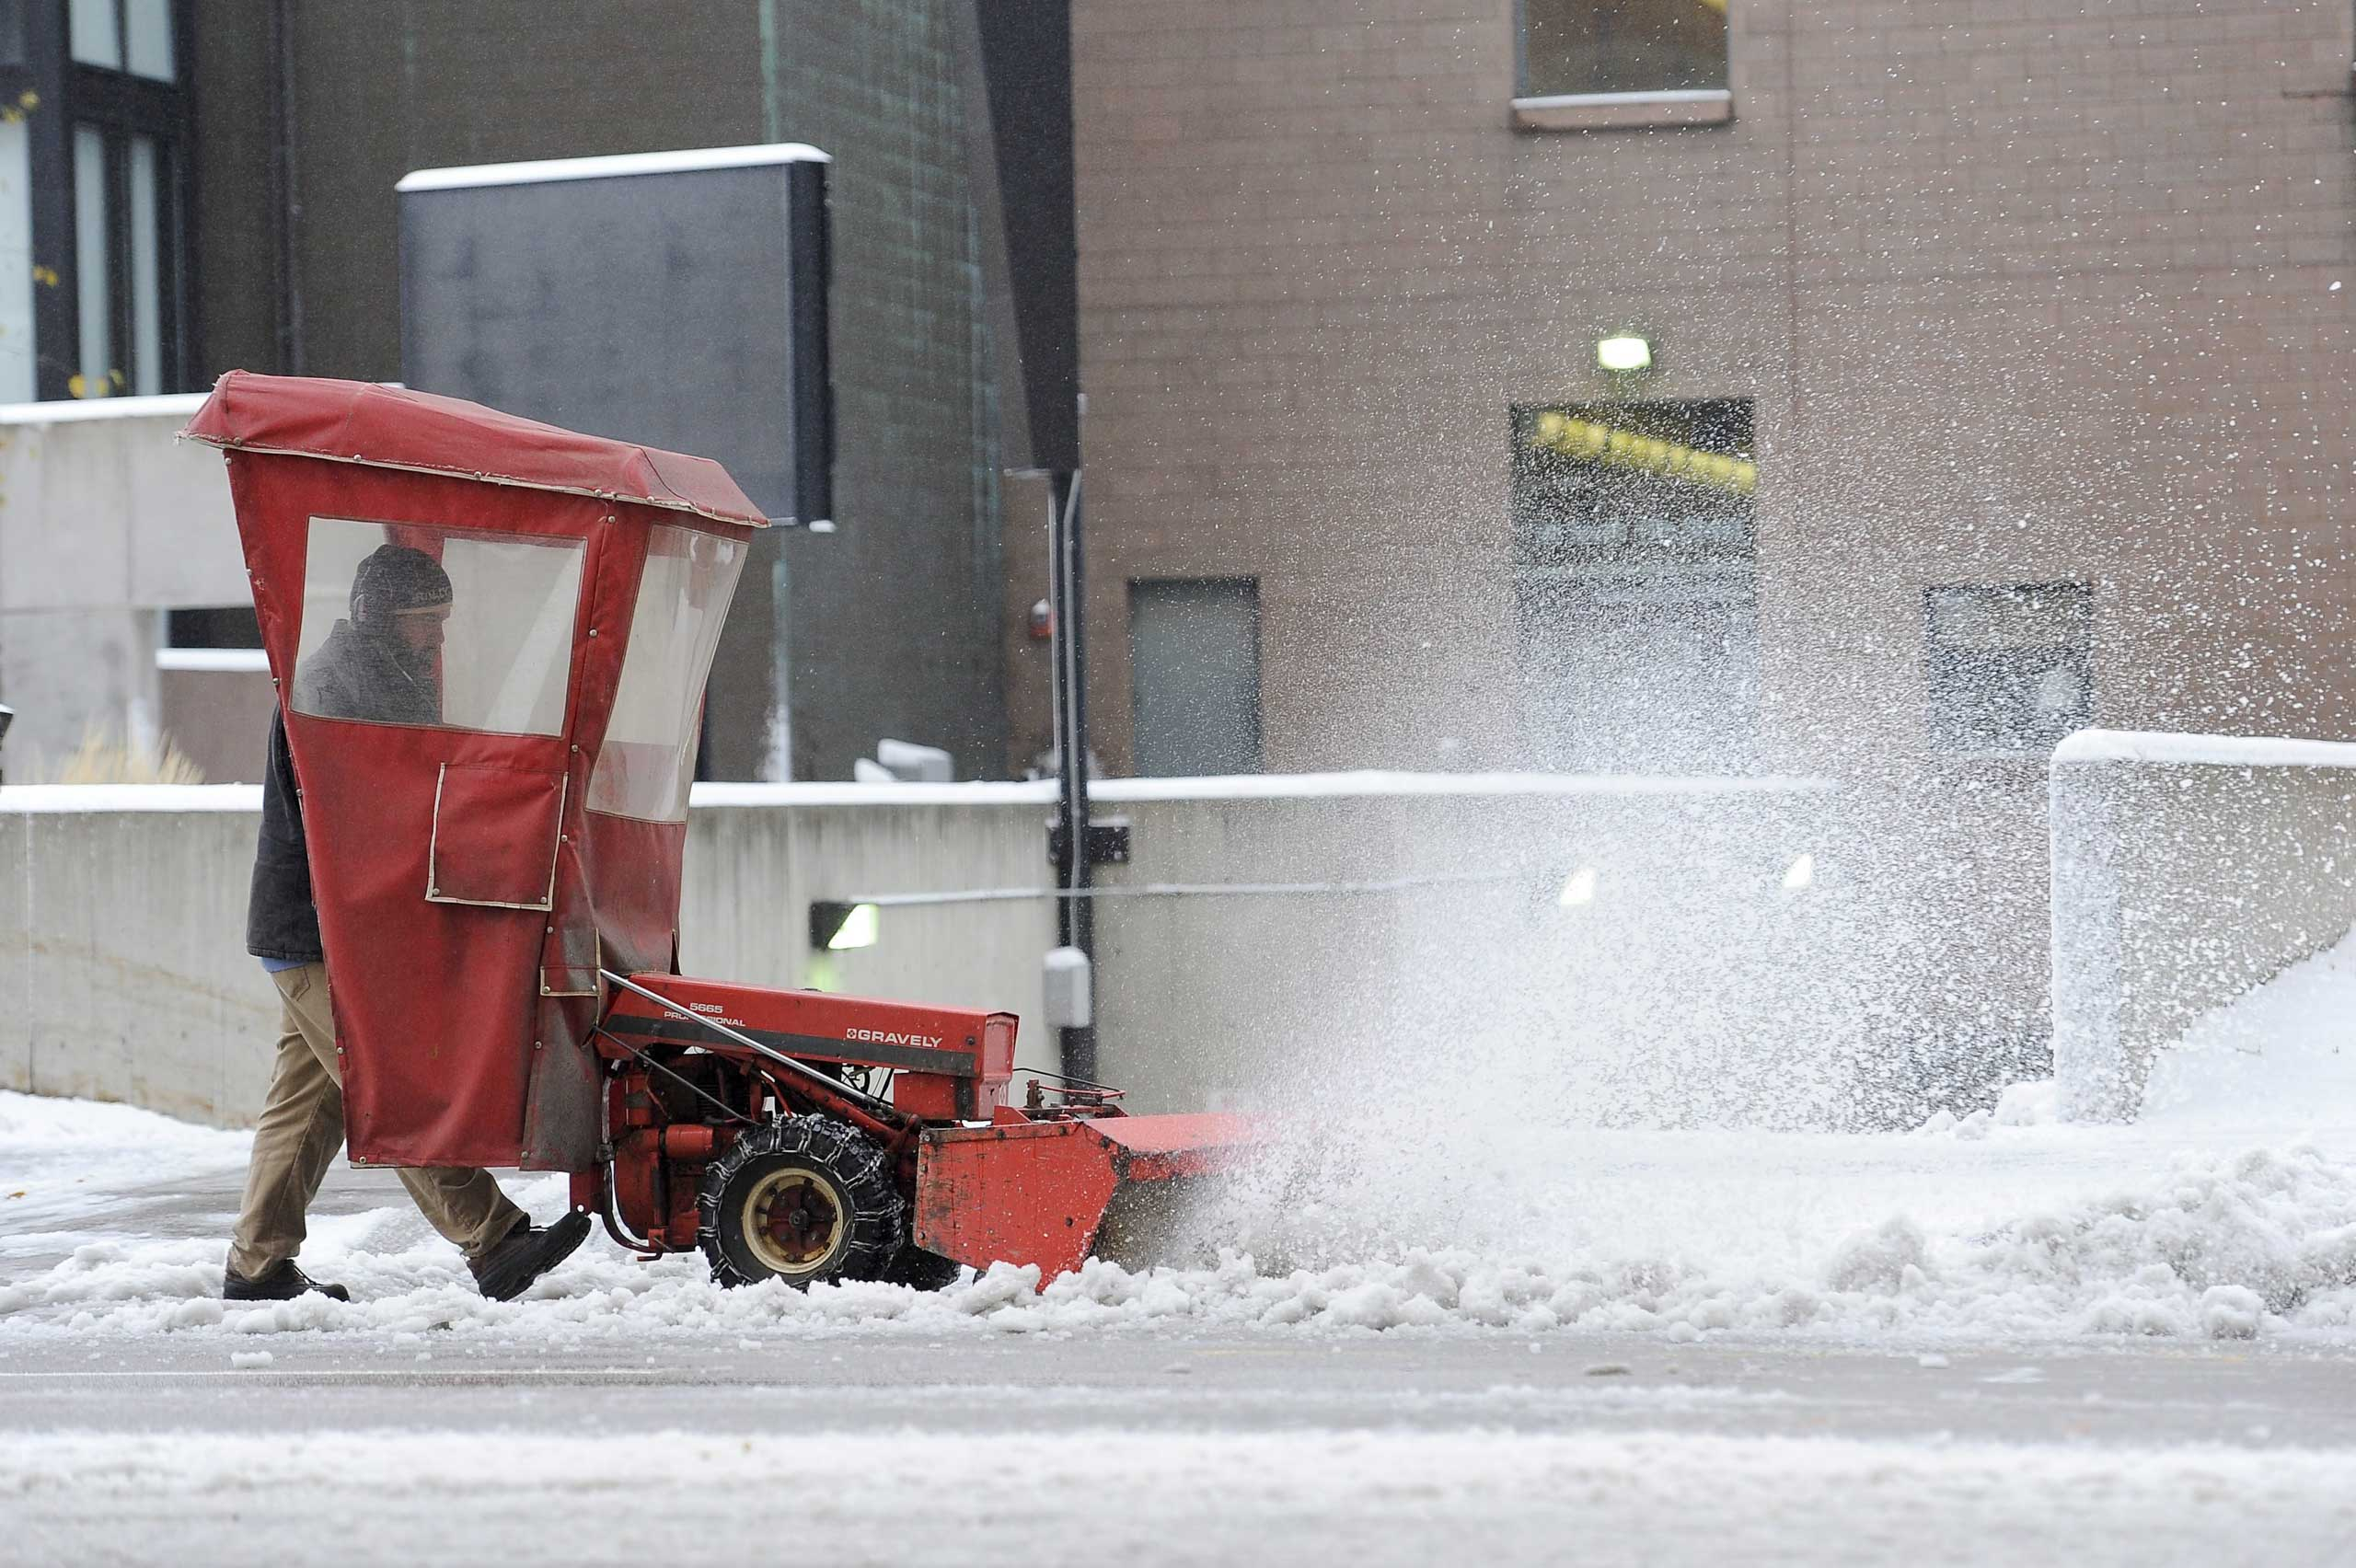 City workers clear the snow during the season's first snowstorm in Minneapolis, on Nov. 10, 2014.